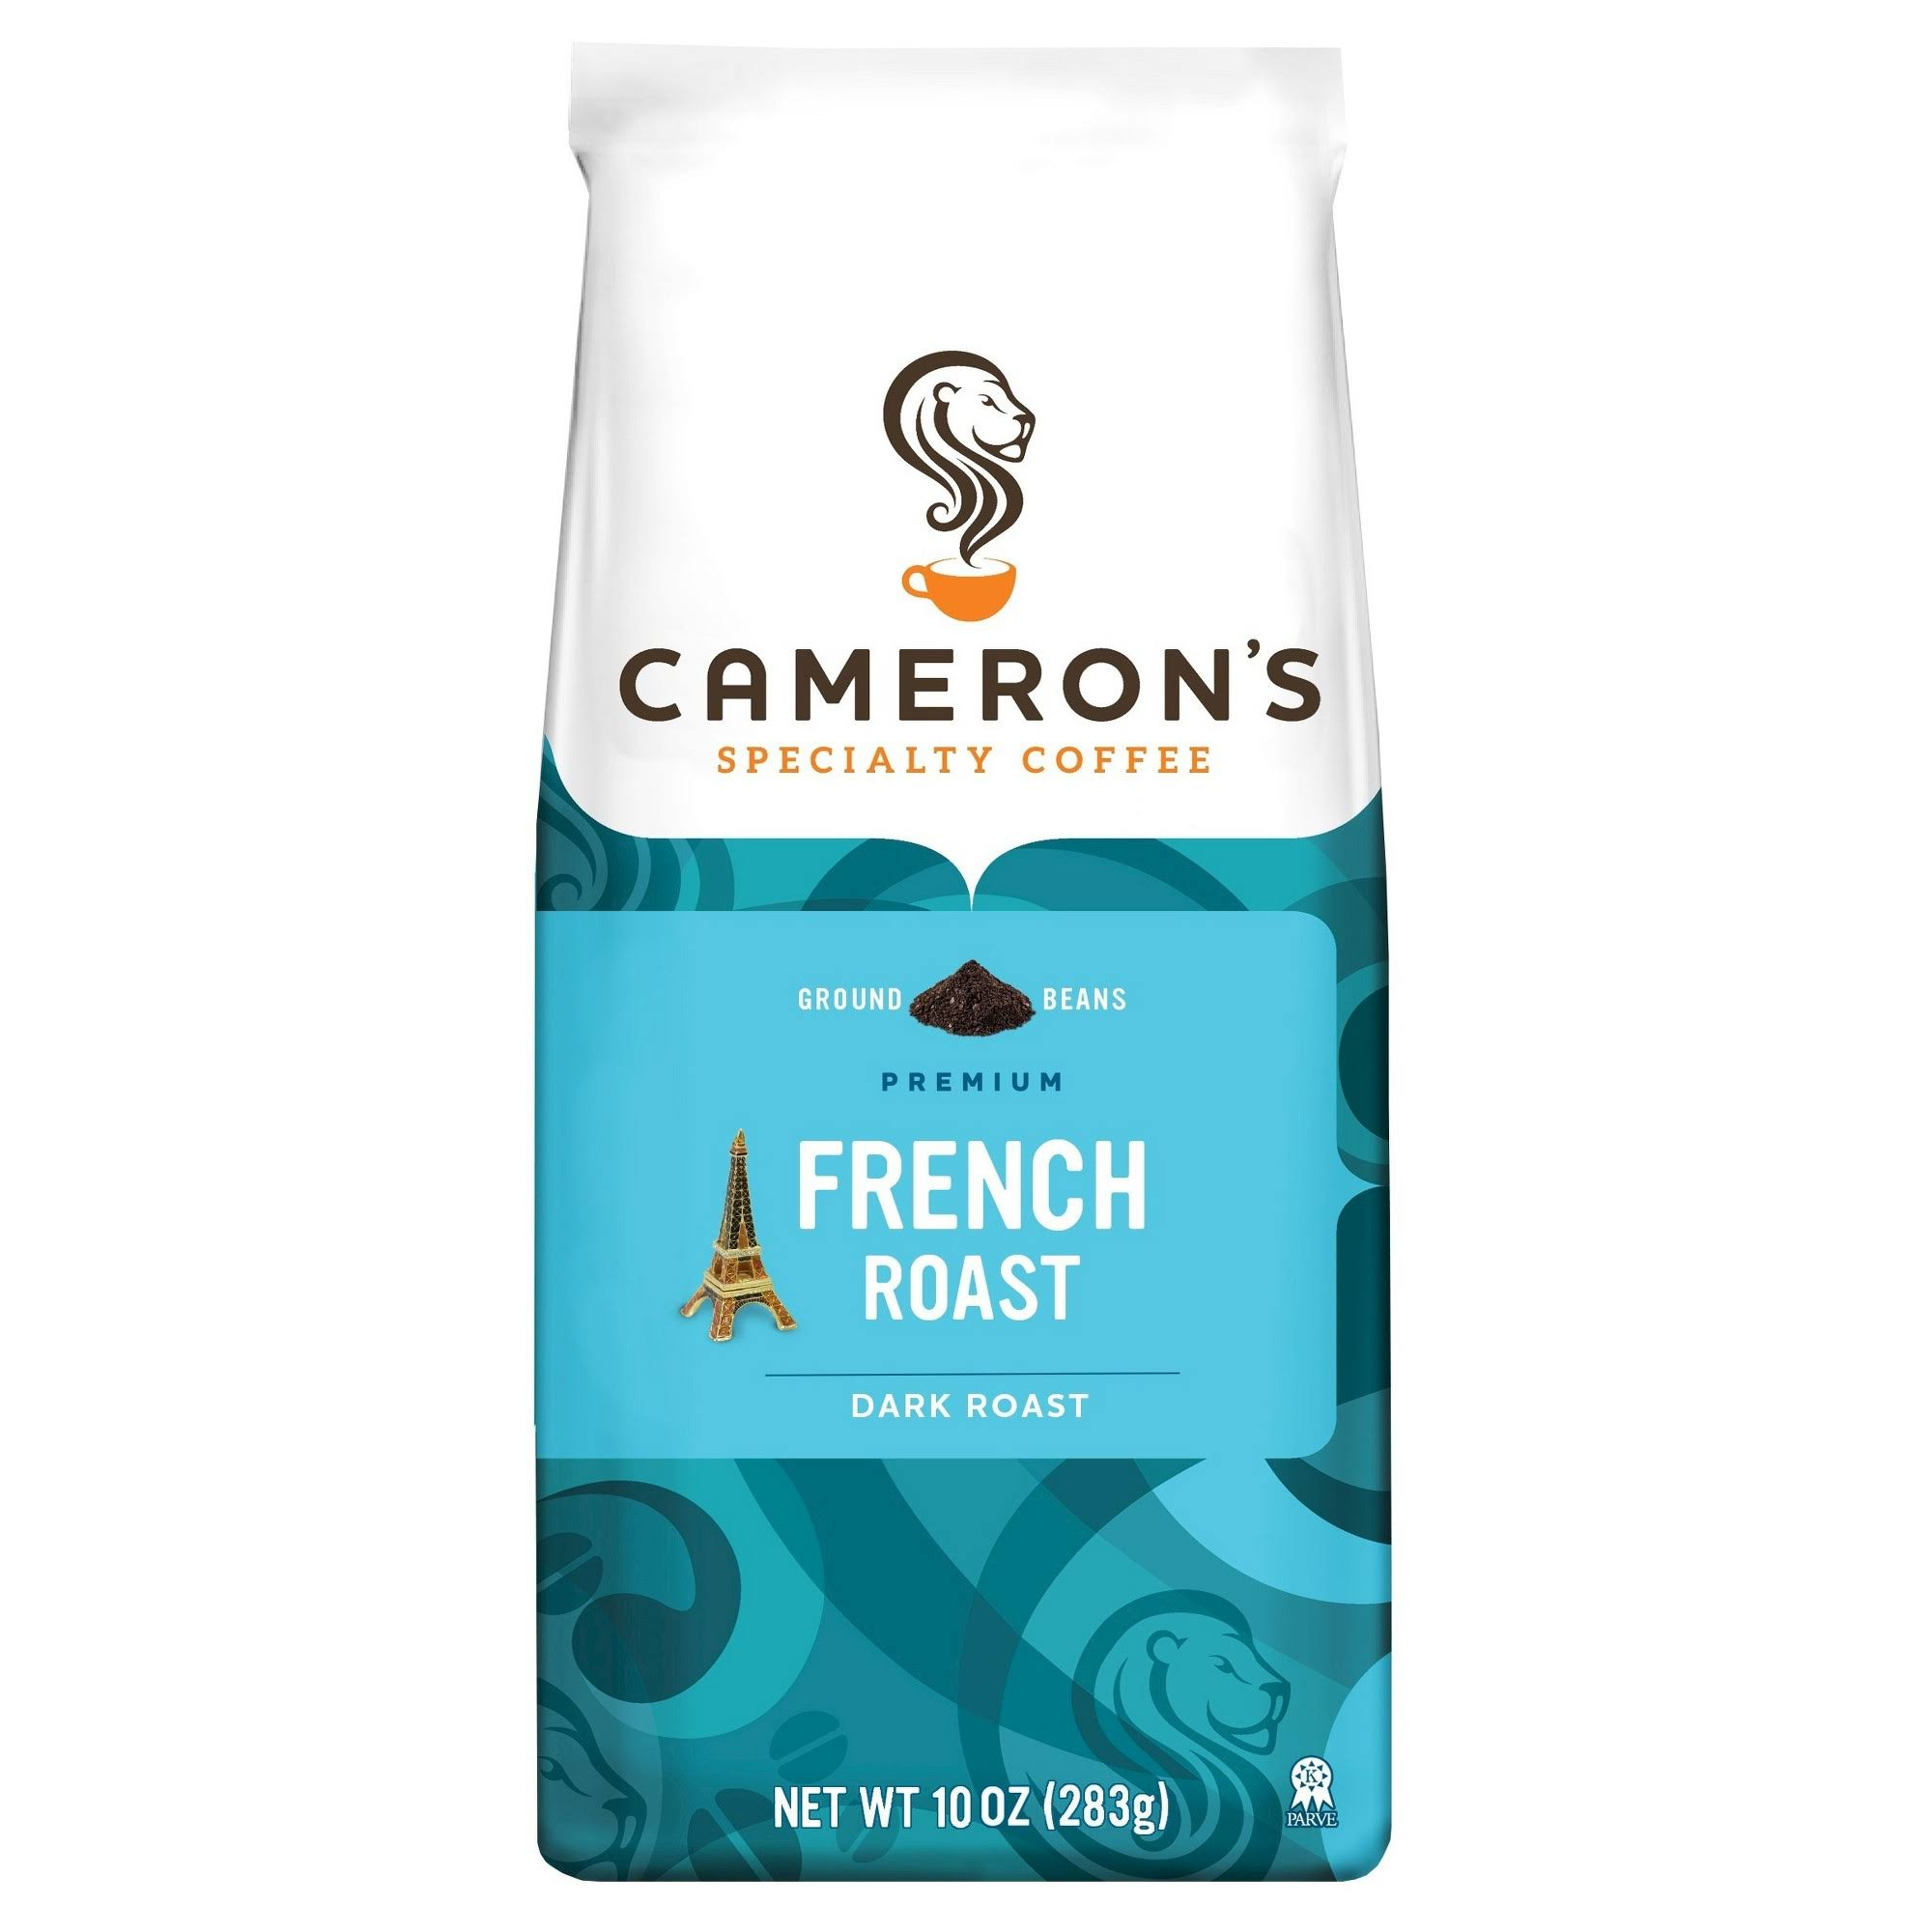 Cameron's Premium French Dark Roast Specialty Coffee - 10oz